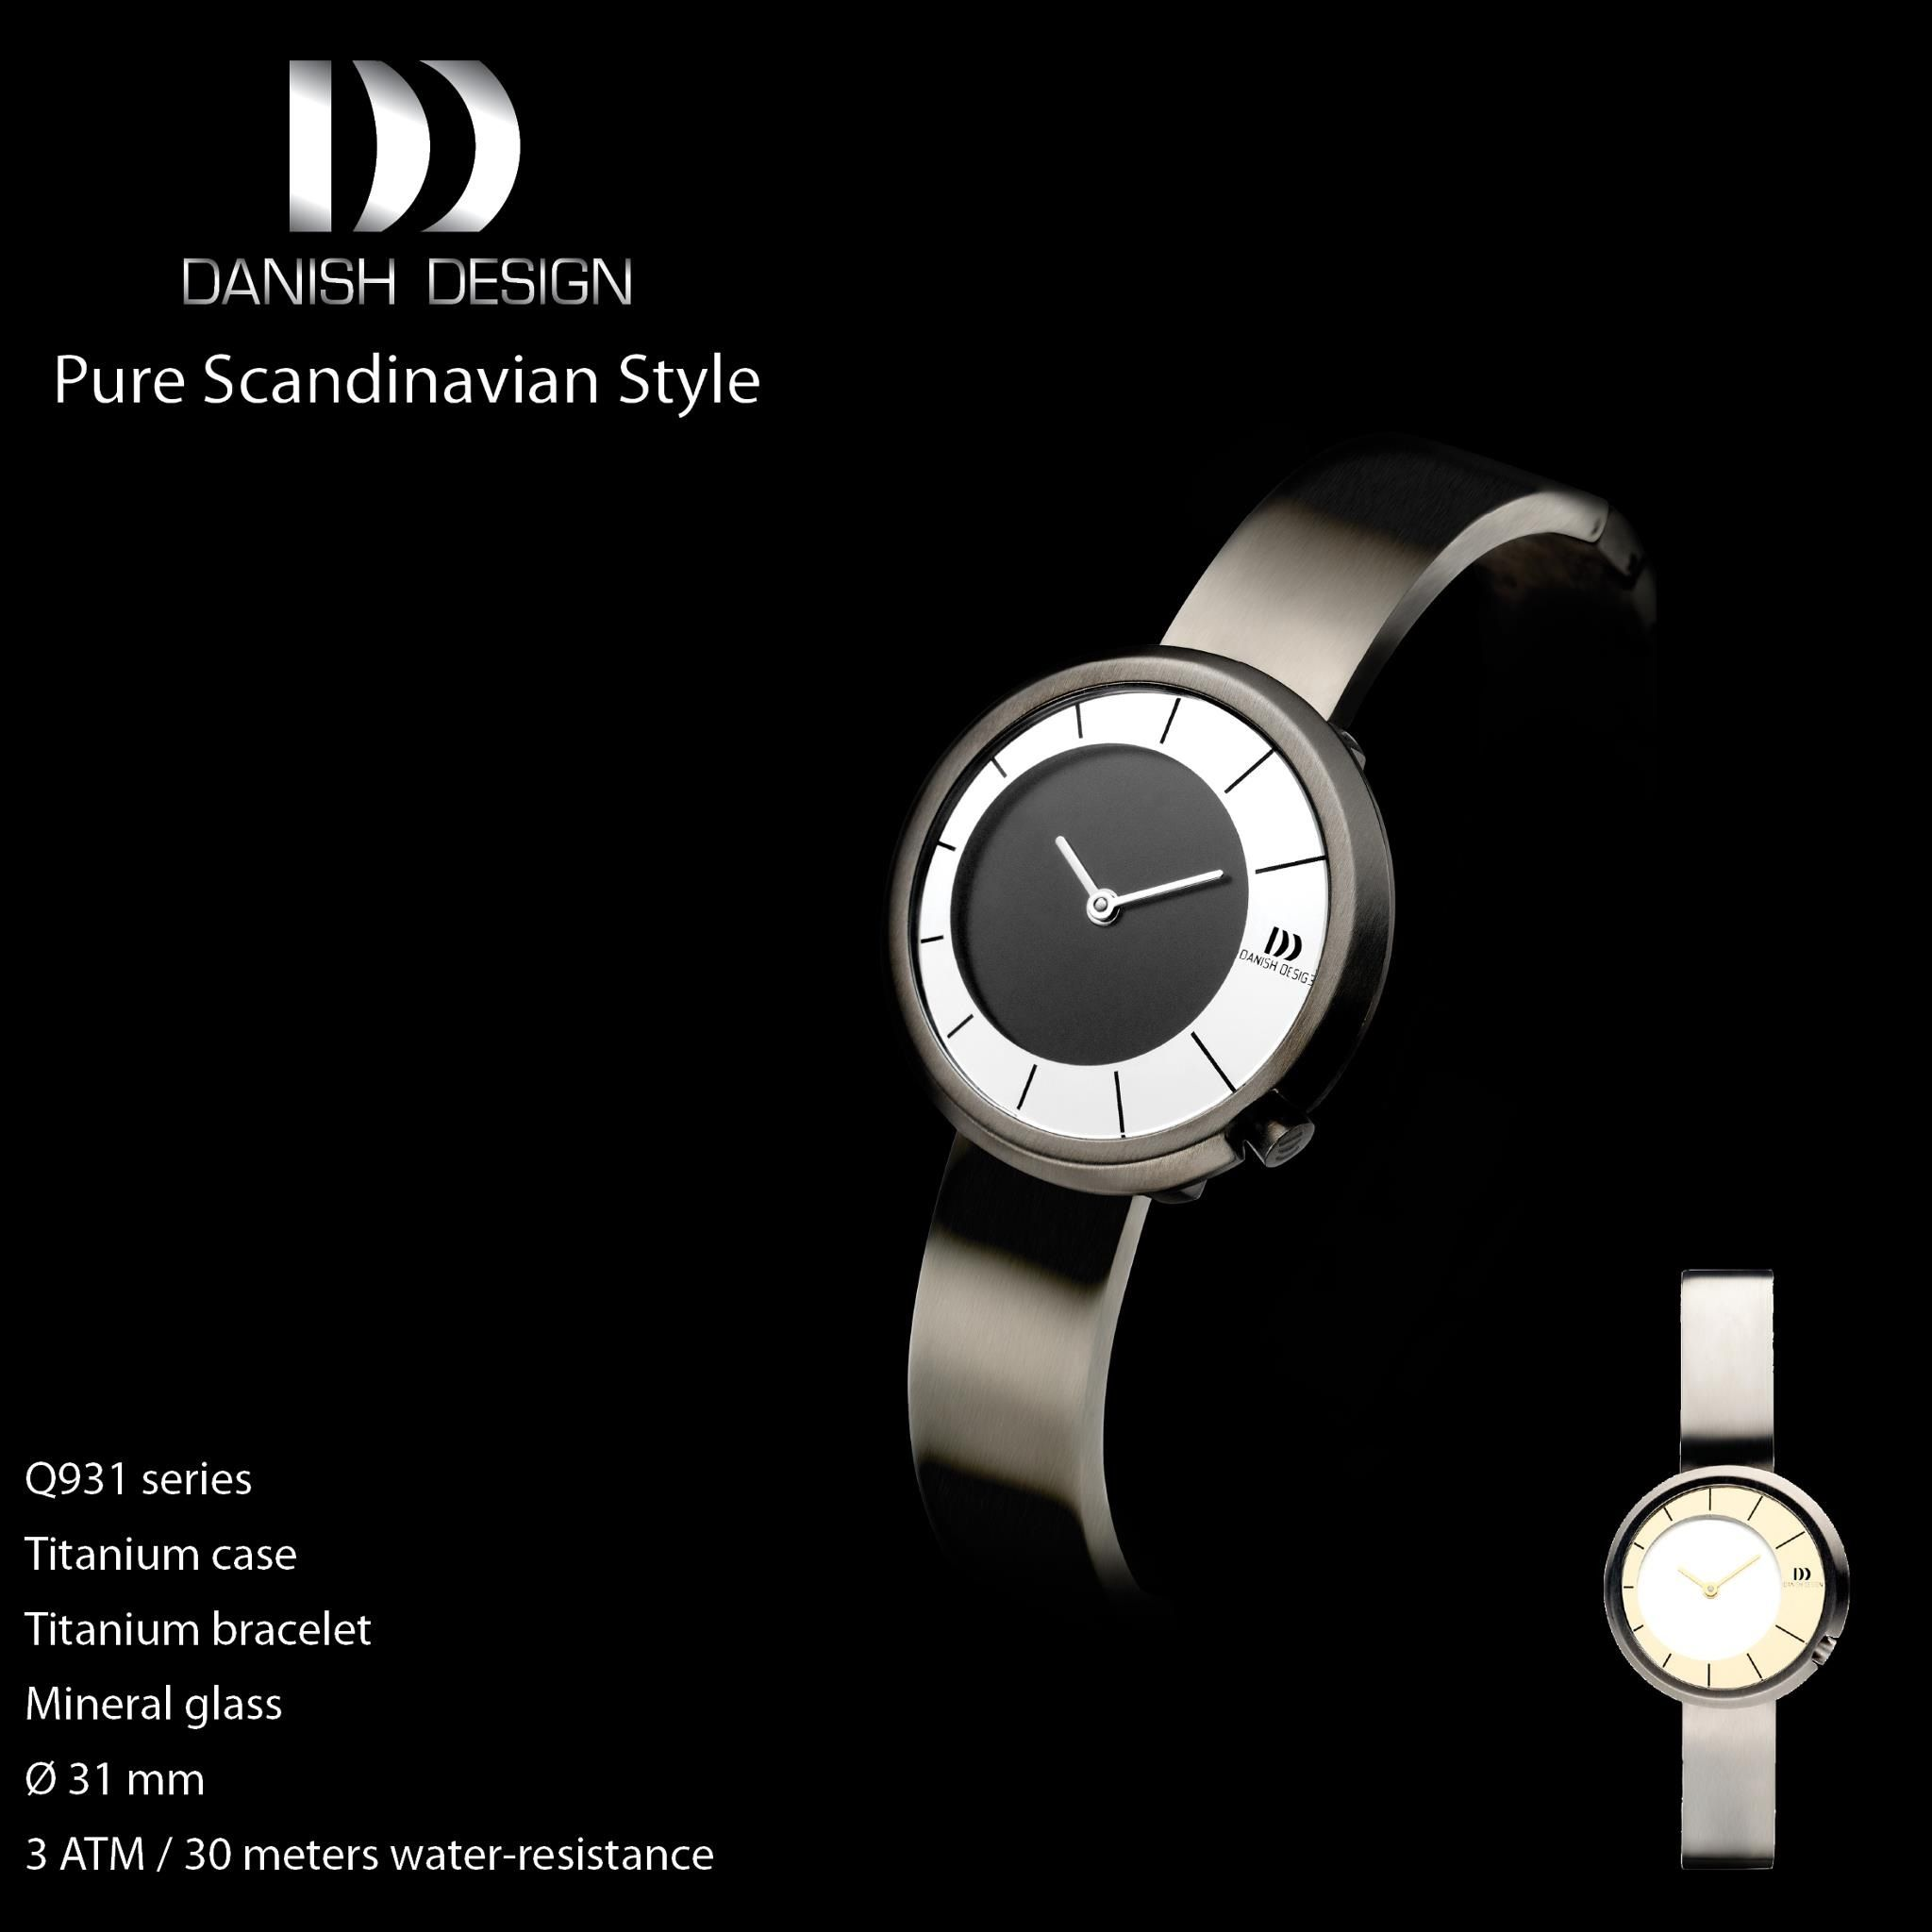 elegant design pin are simple and scandinavian danish designs non watches their famous for obstructive